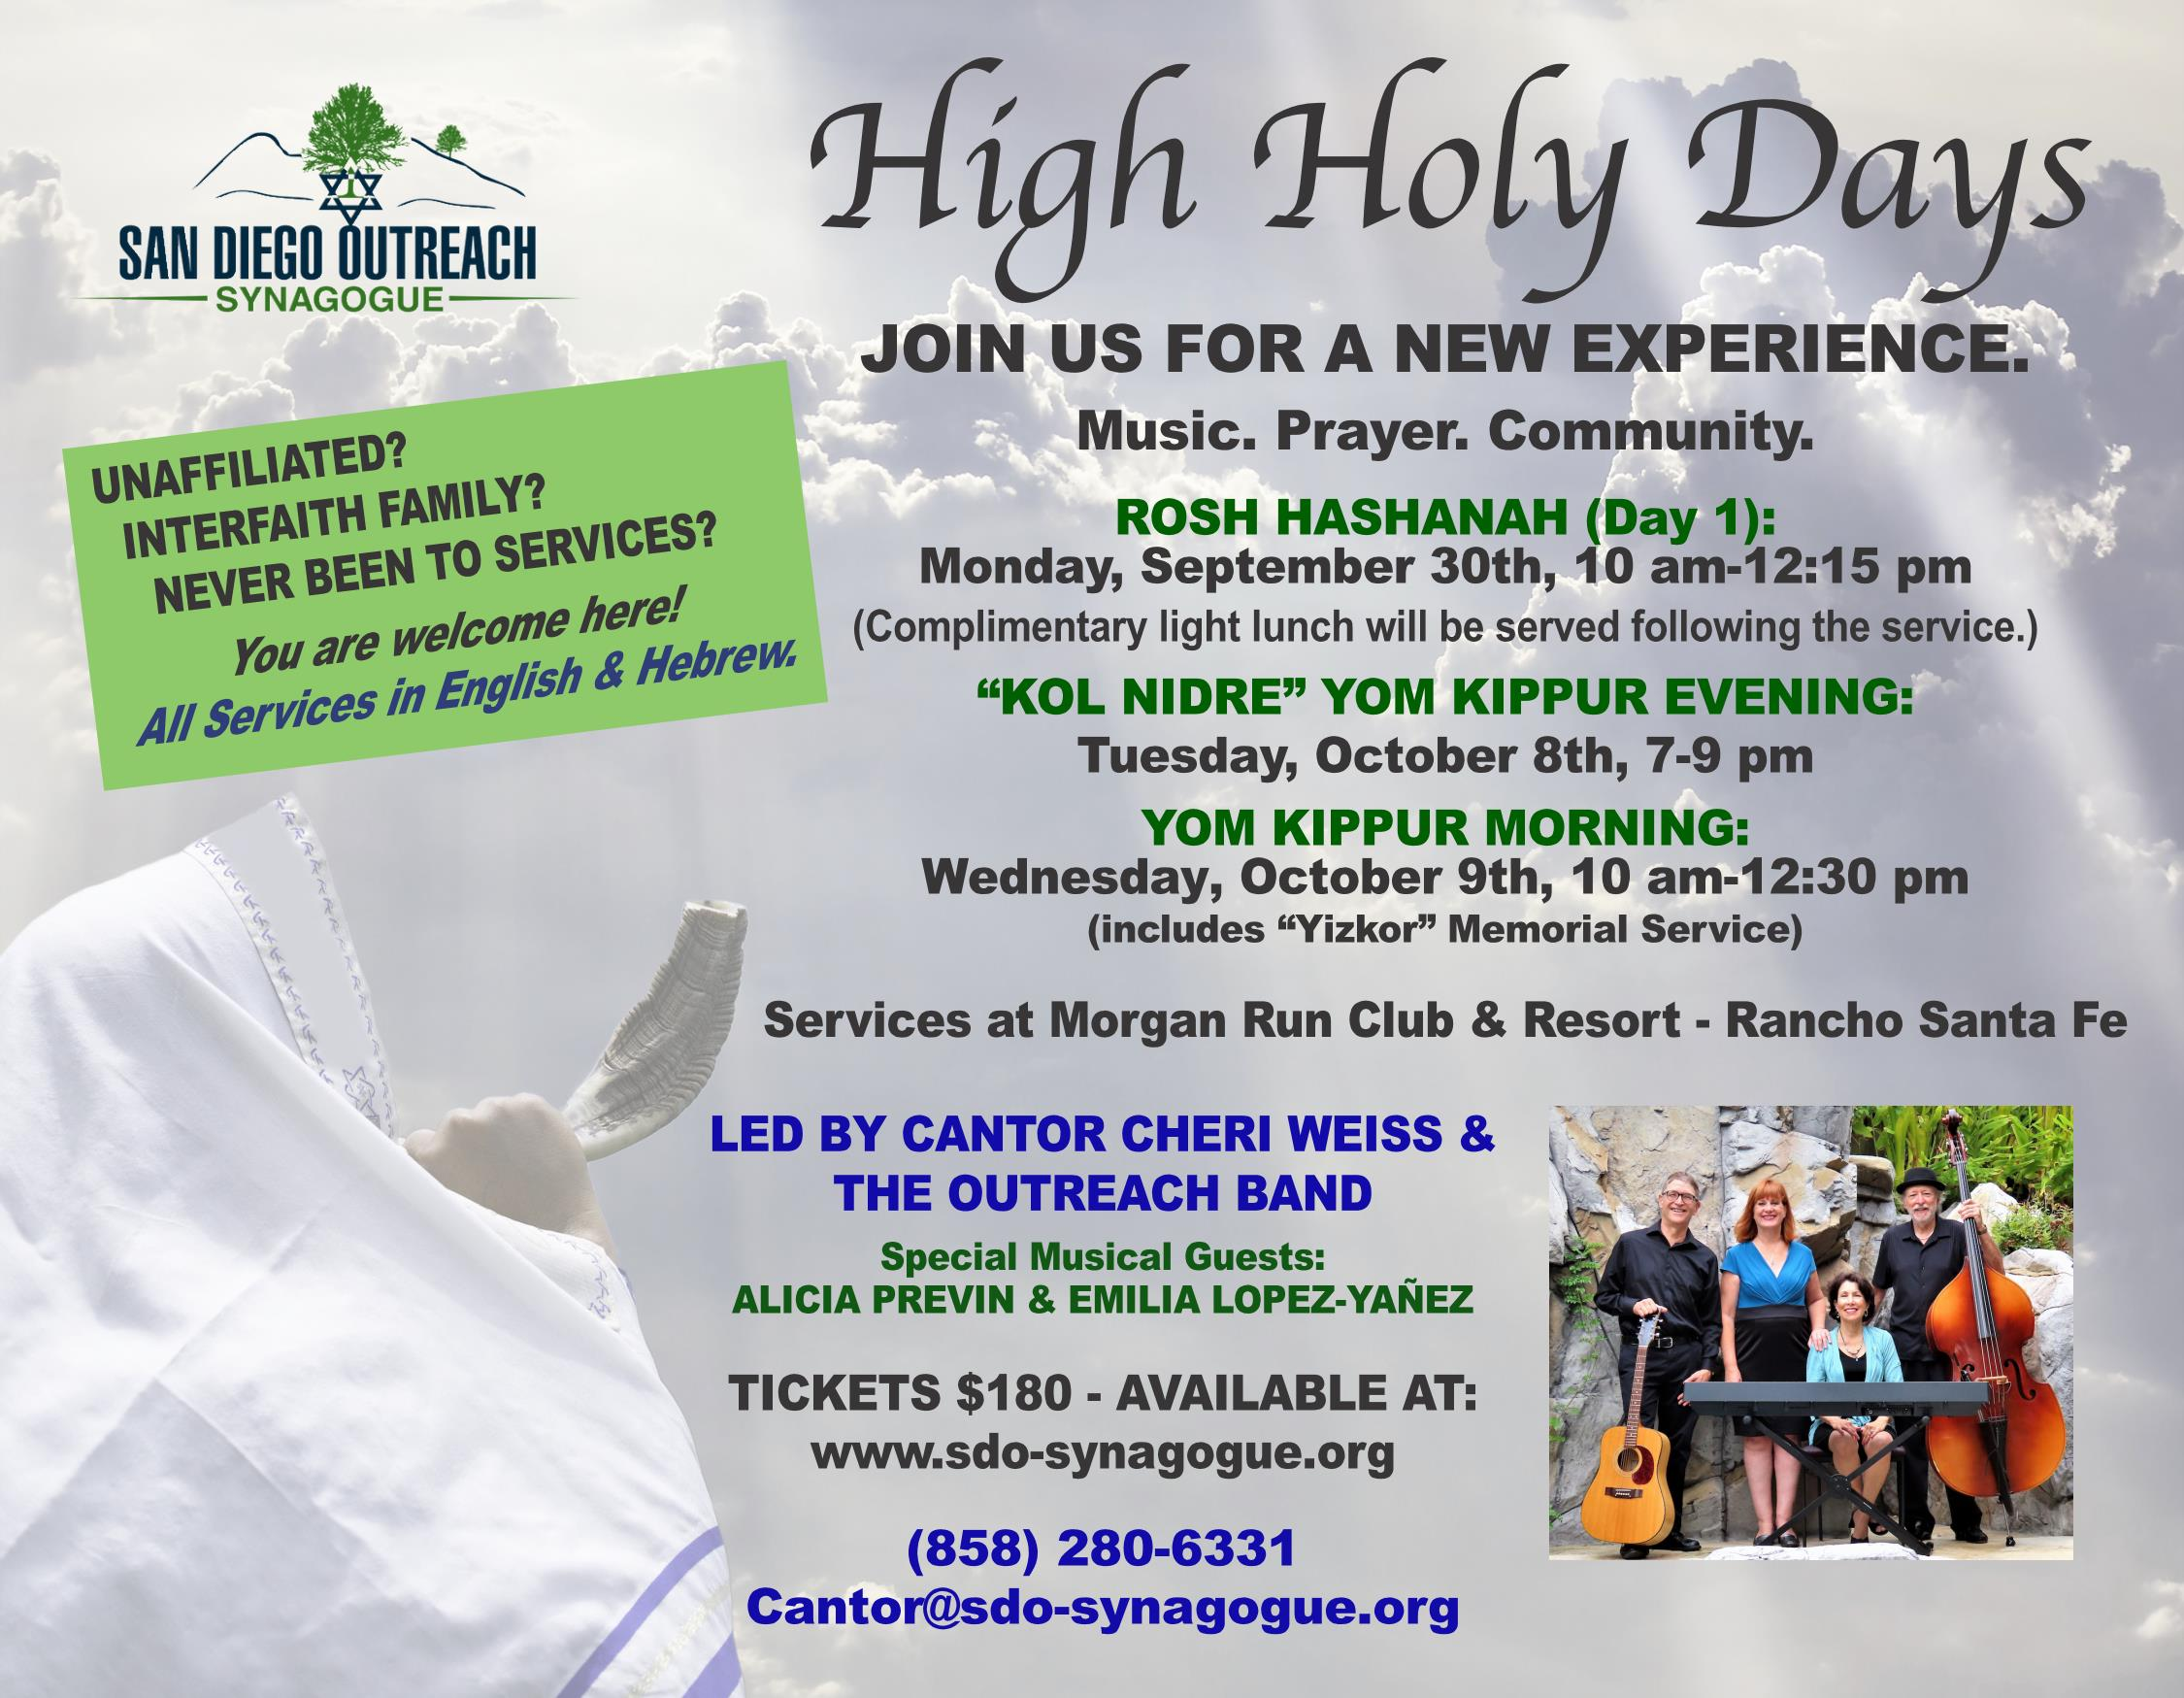 San Diego Outreach Synagogue to host musical High Holy Days